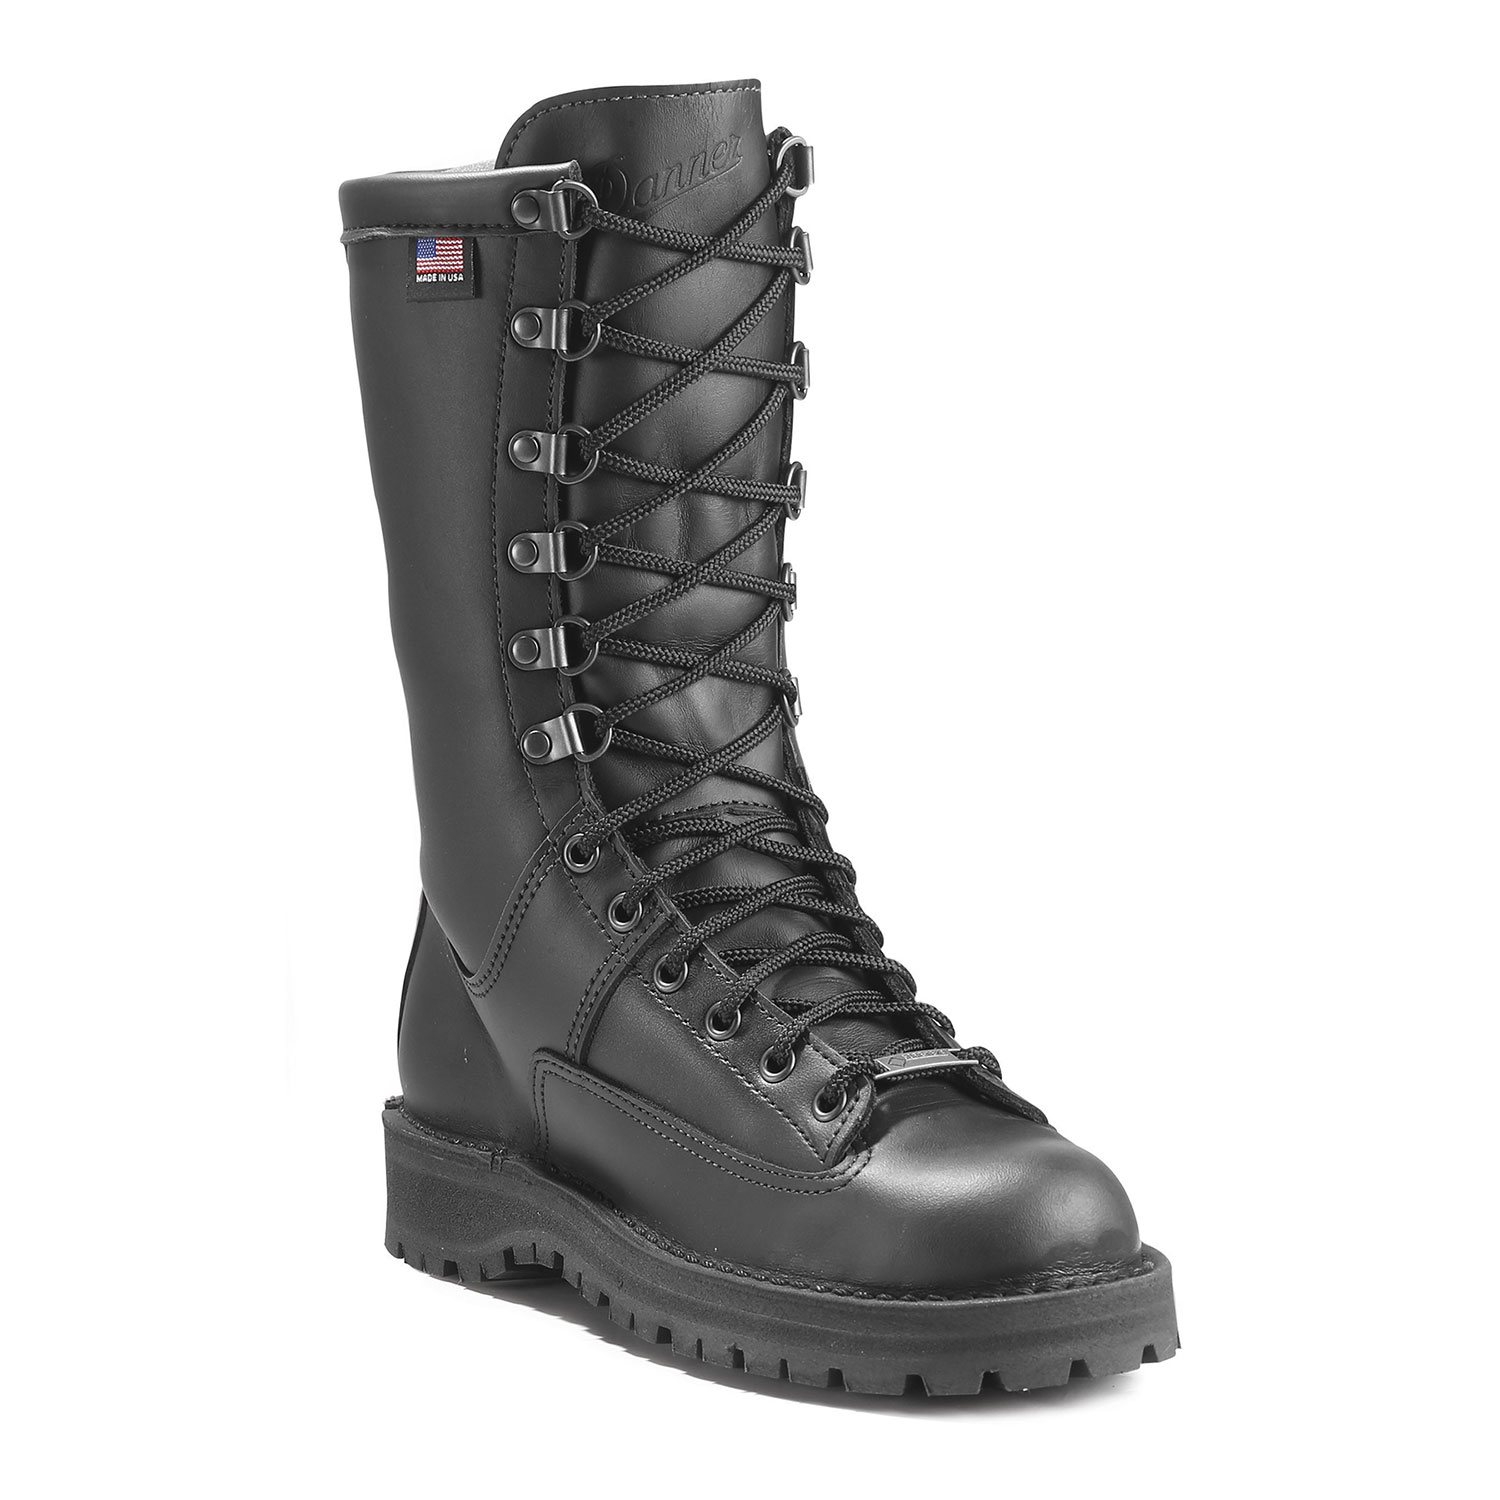 Click image for larger version.  Name:Danner Boot.jpg Views:14 Size:190.0 KB ID:711616